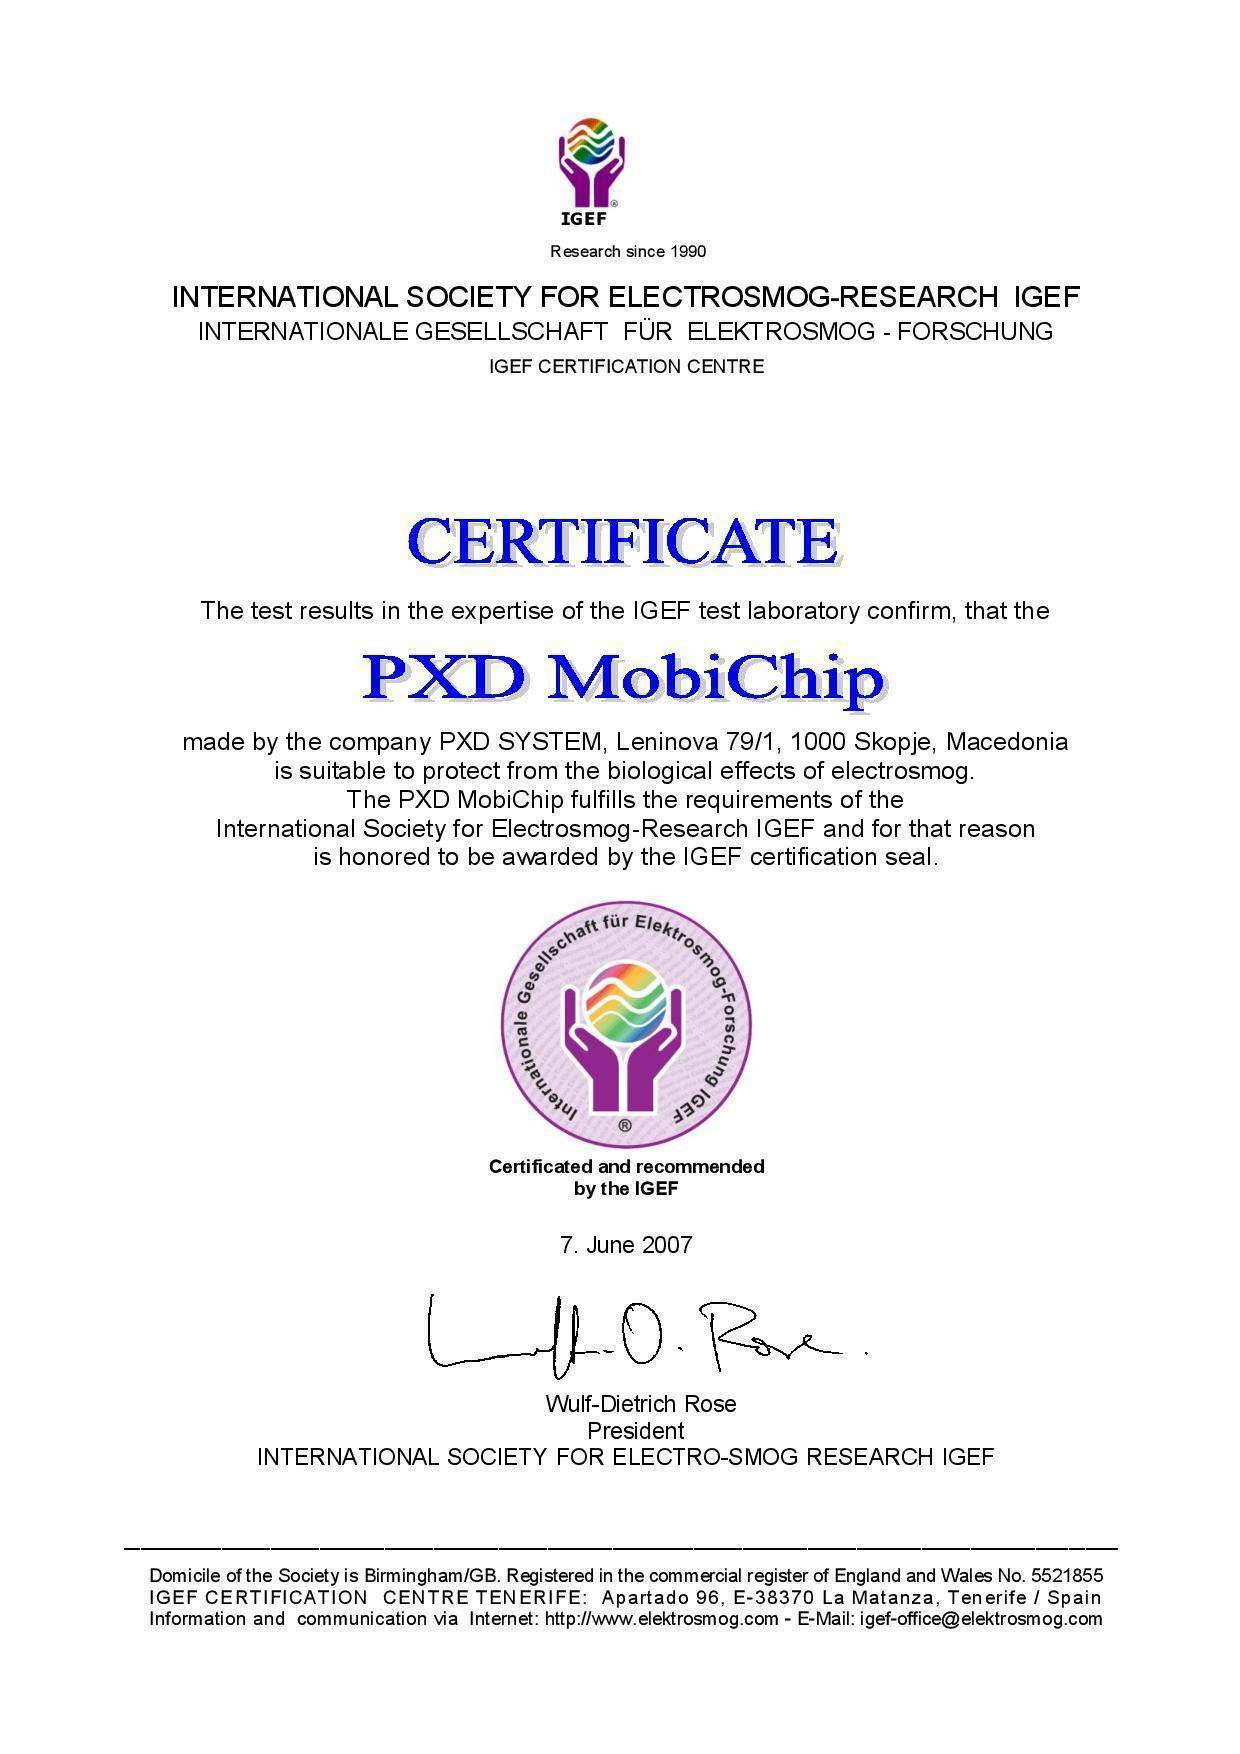 Certification from IGEF test that BChip is suitable to protect from the biological effects of electrosmog